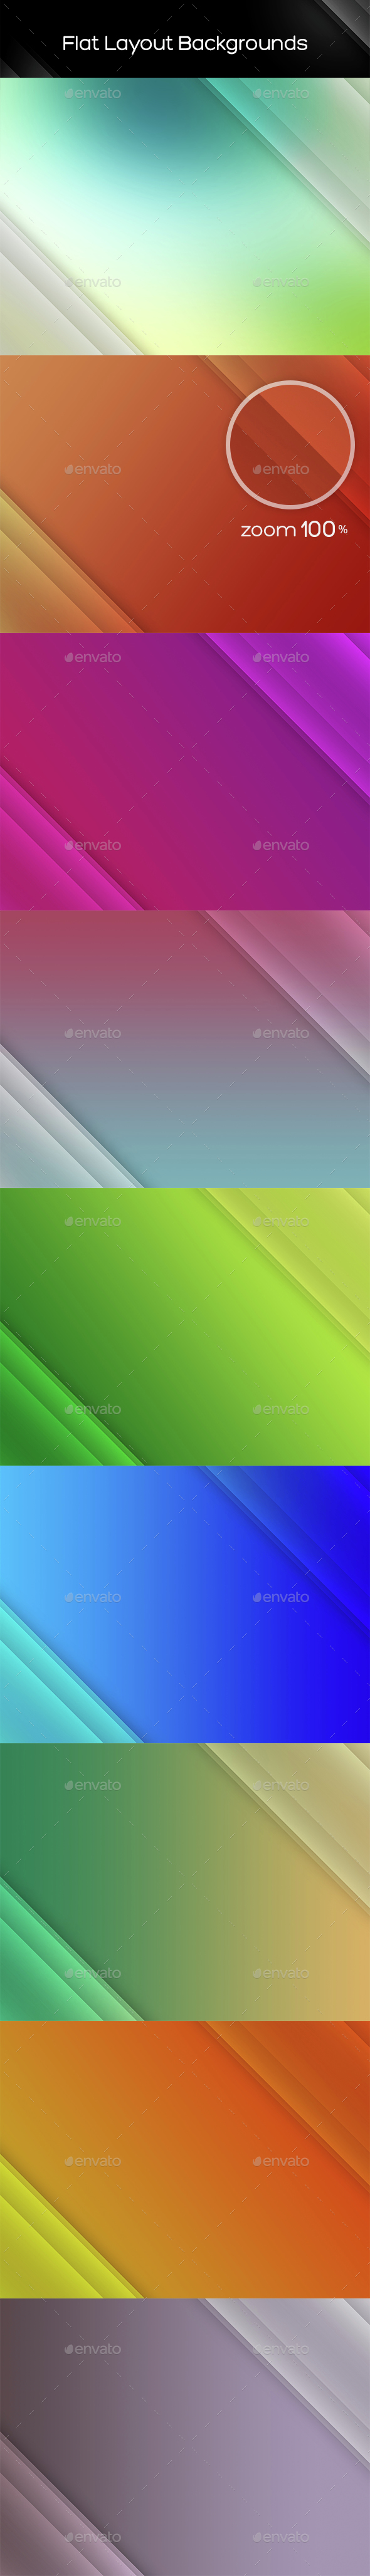 Flat Layout Backgrounds - Backgrounds Graphics